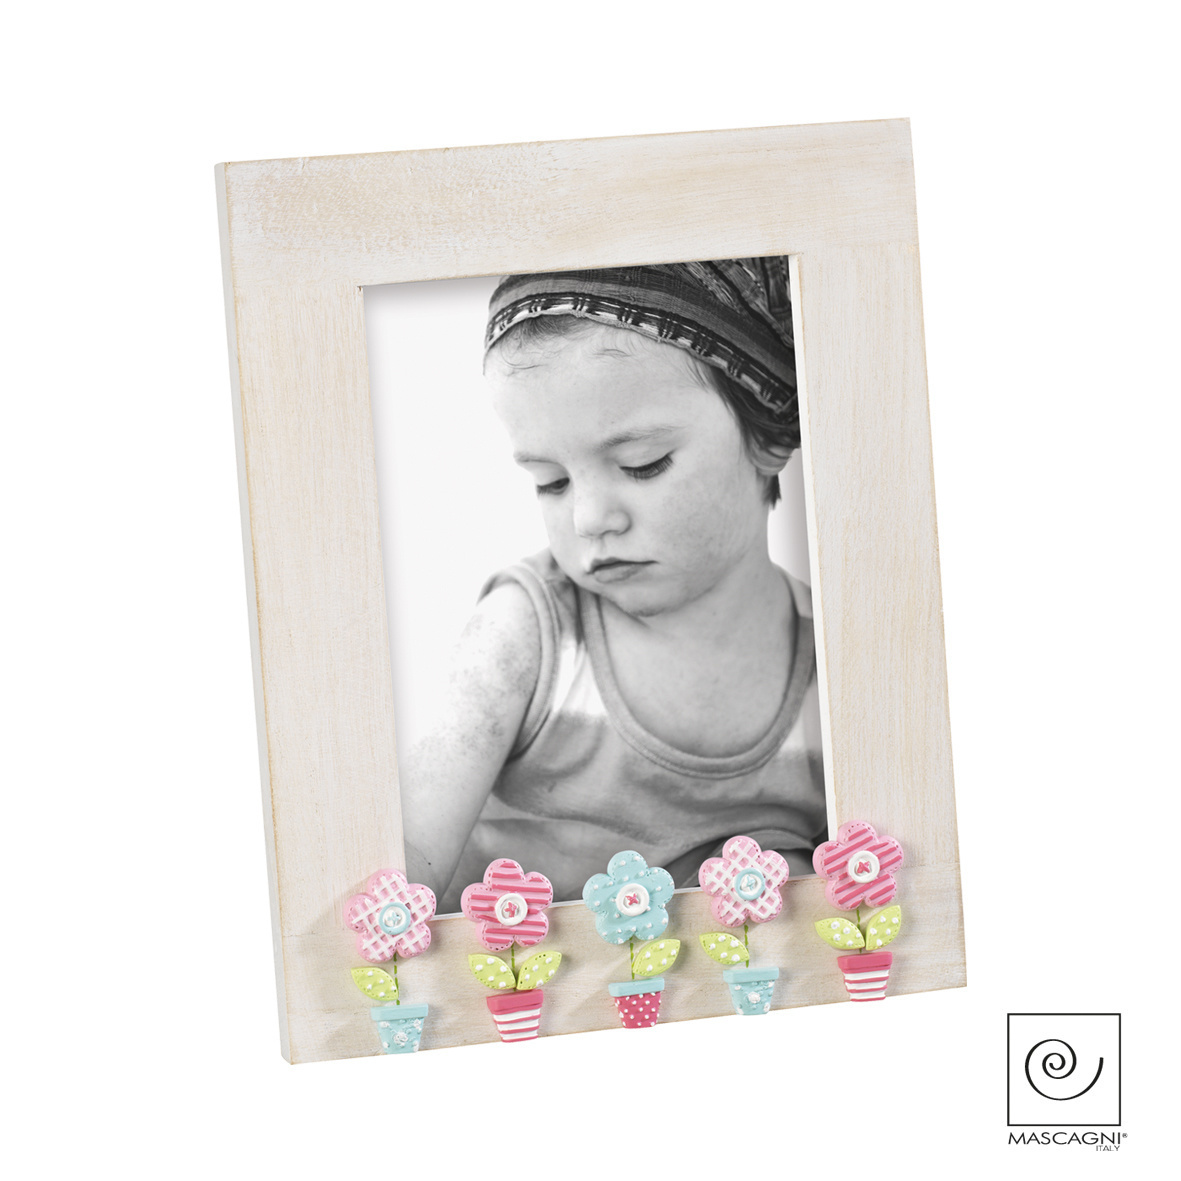 Art Mascagni A840 PHOTO FRAME 13X18